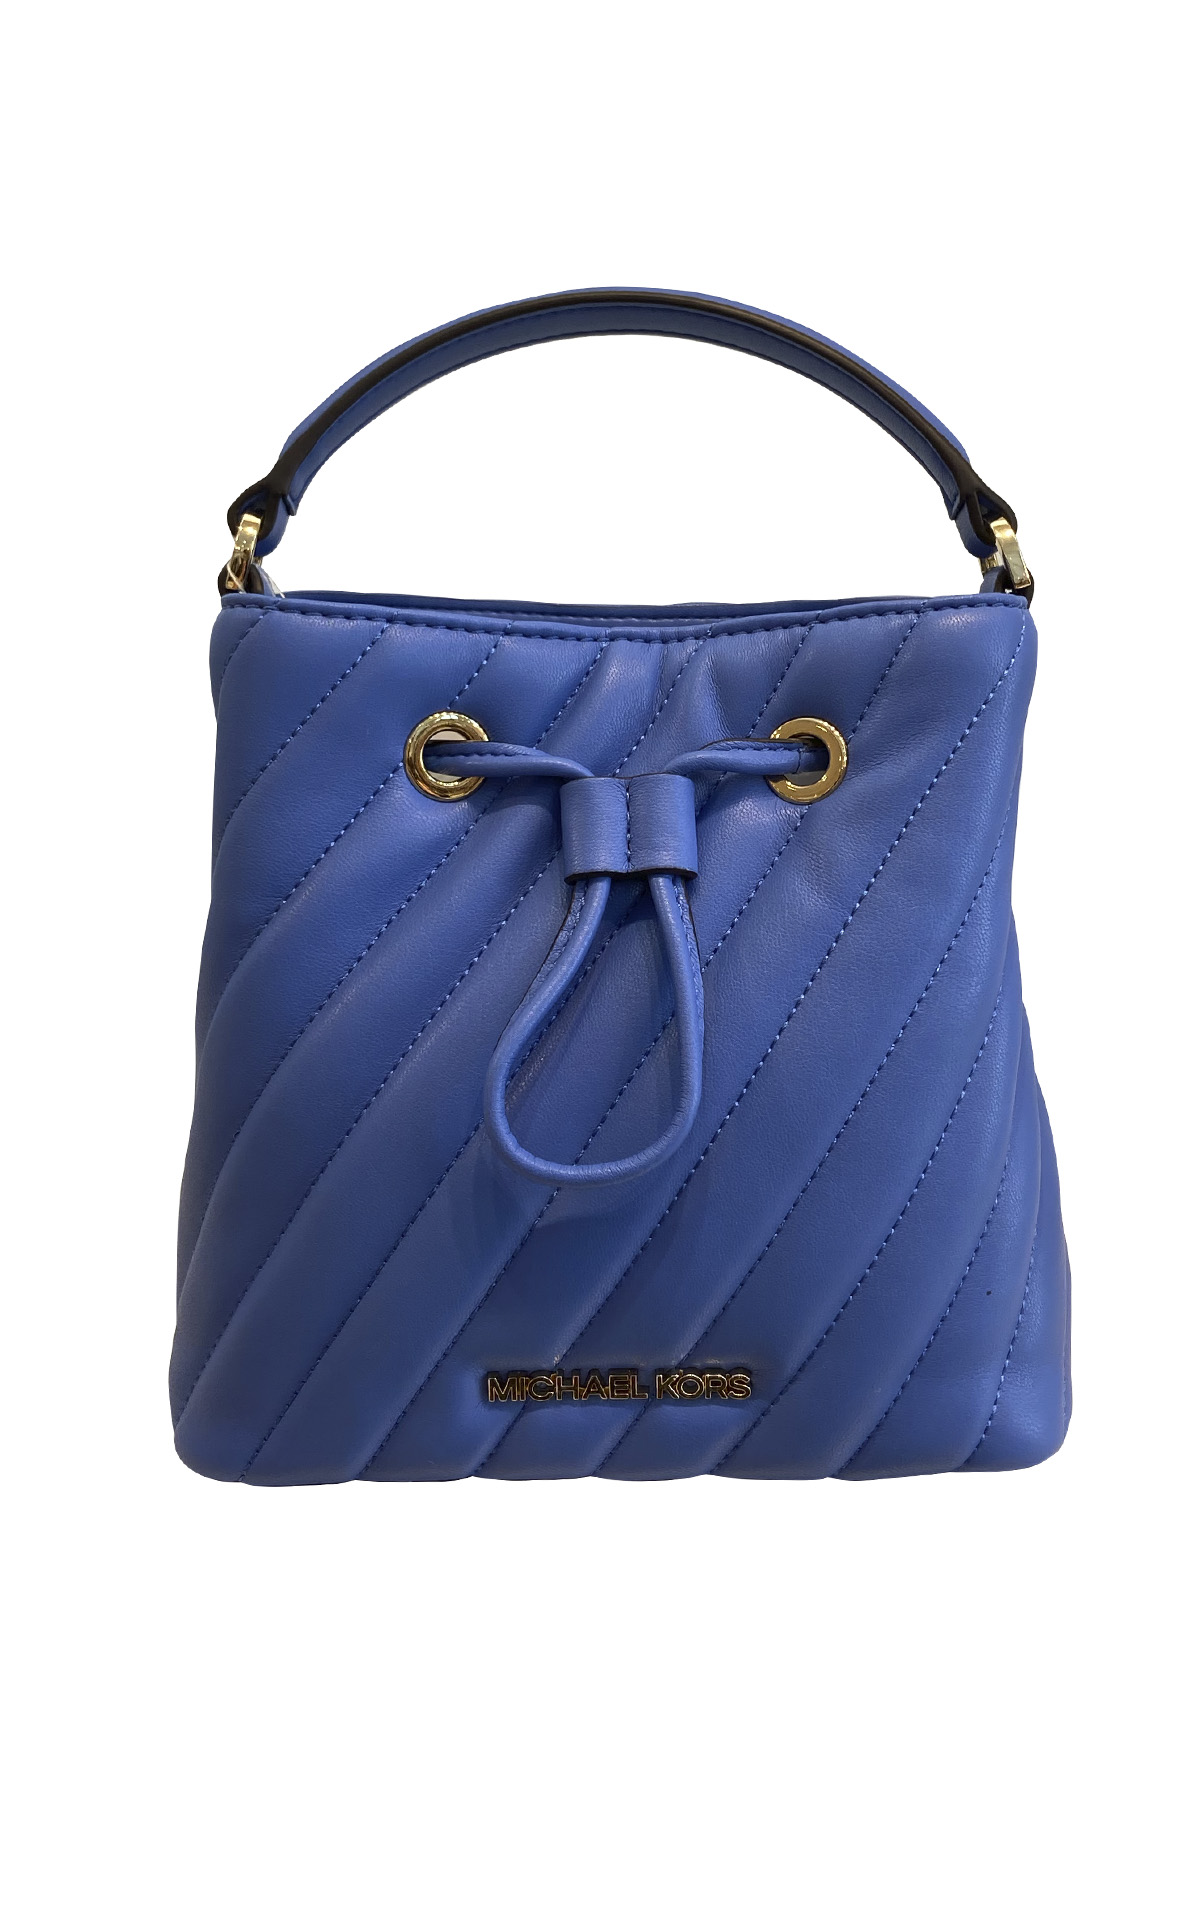 Dark blue bag from MK